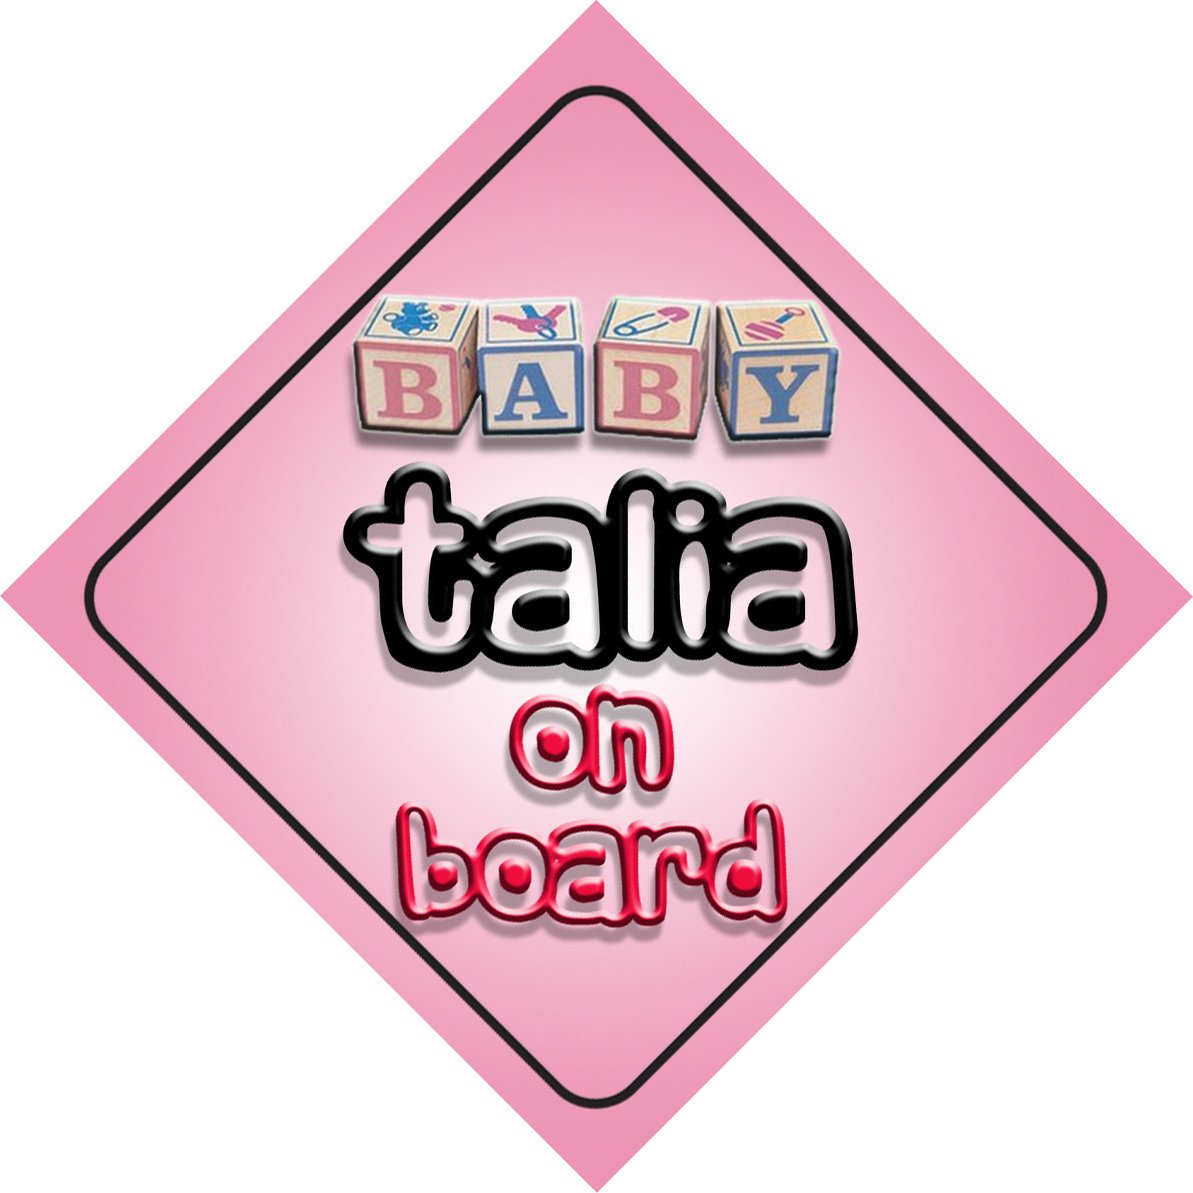 Baby Girl Talia on board novelty car sign gift/present for new child/newborn baby